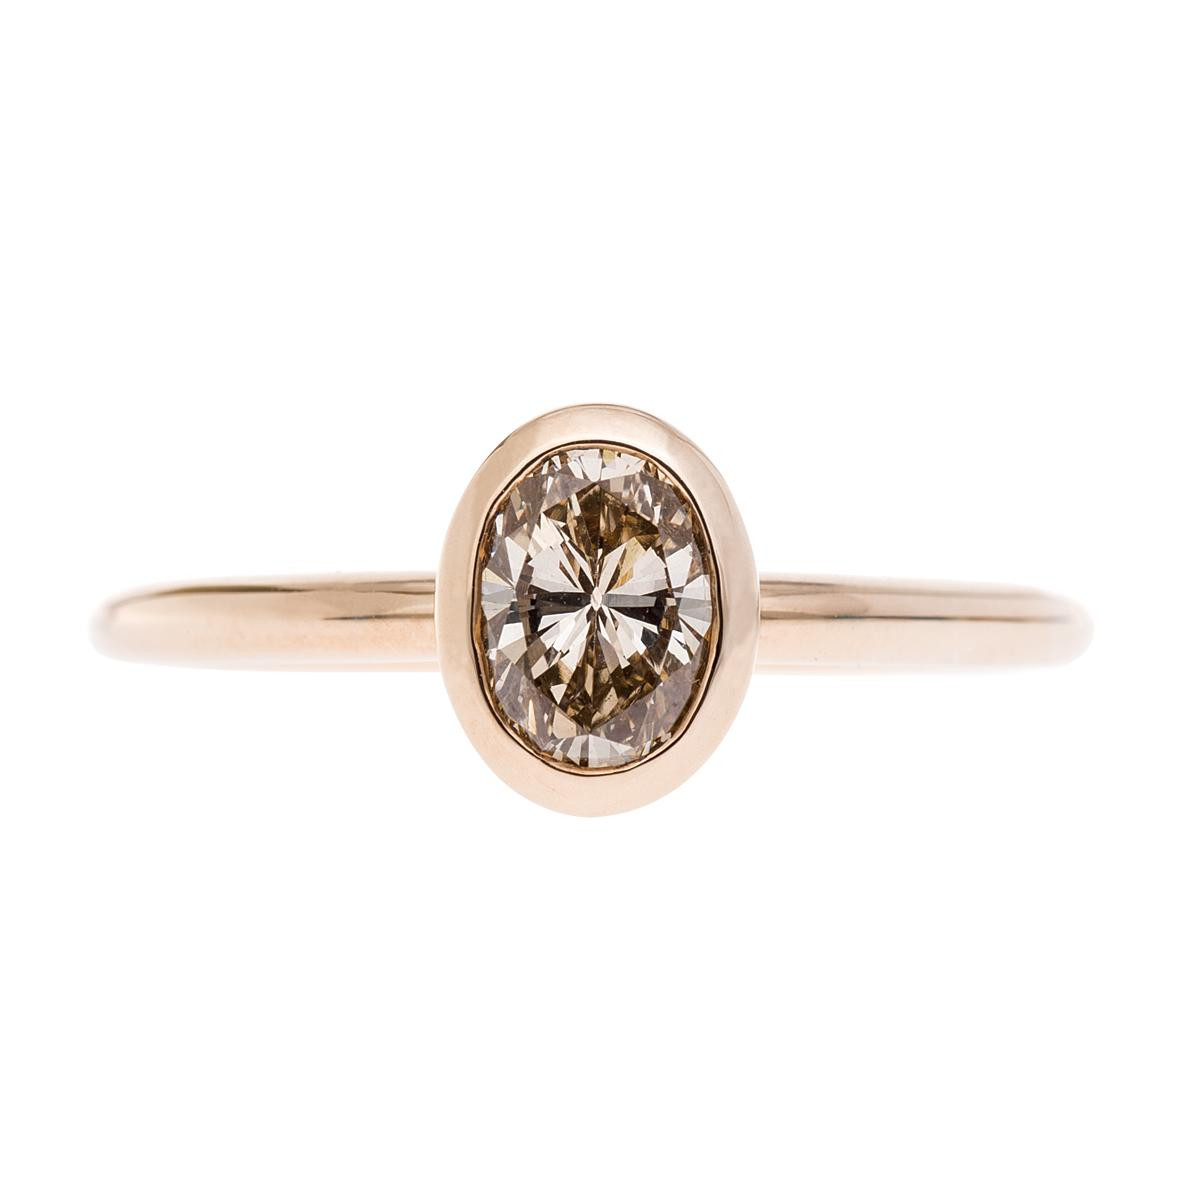 New 0.64 CT Oval Champagne Diamond Ring